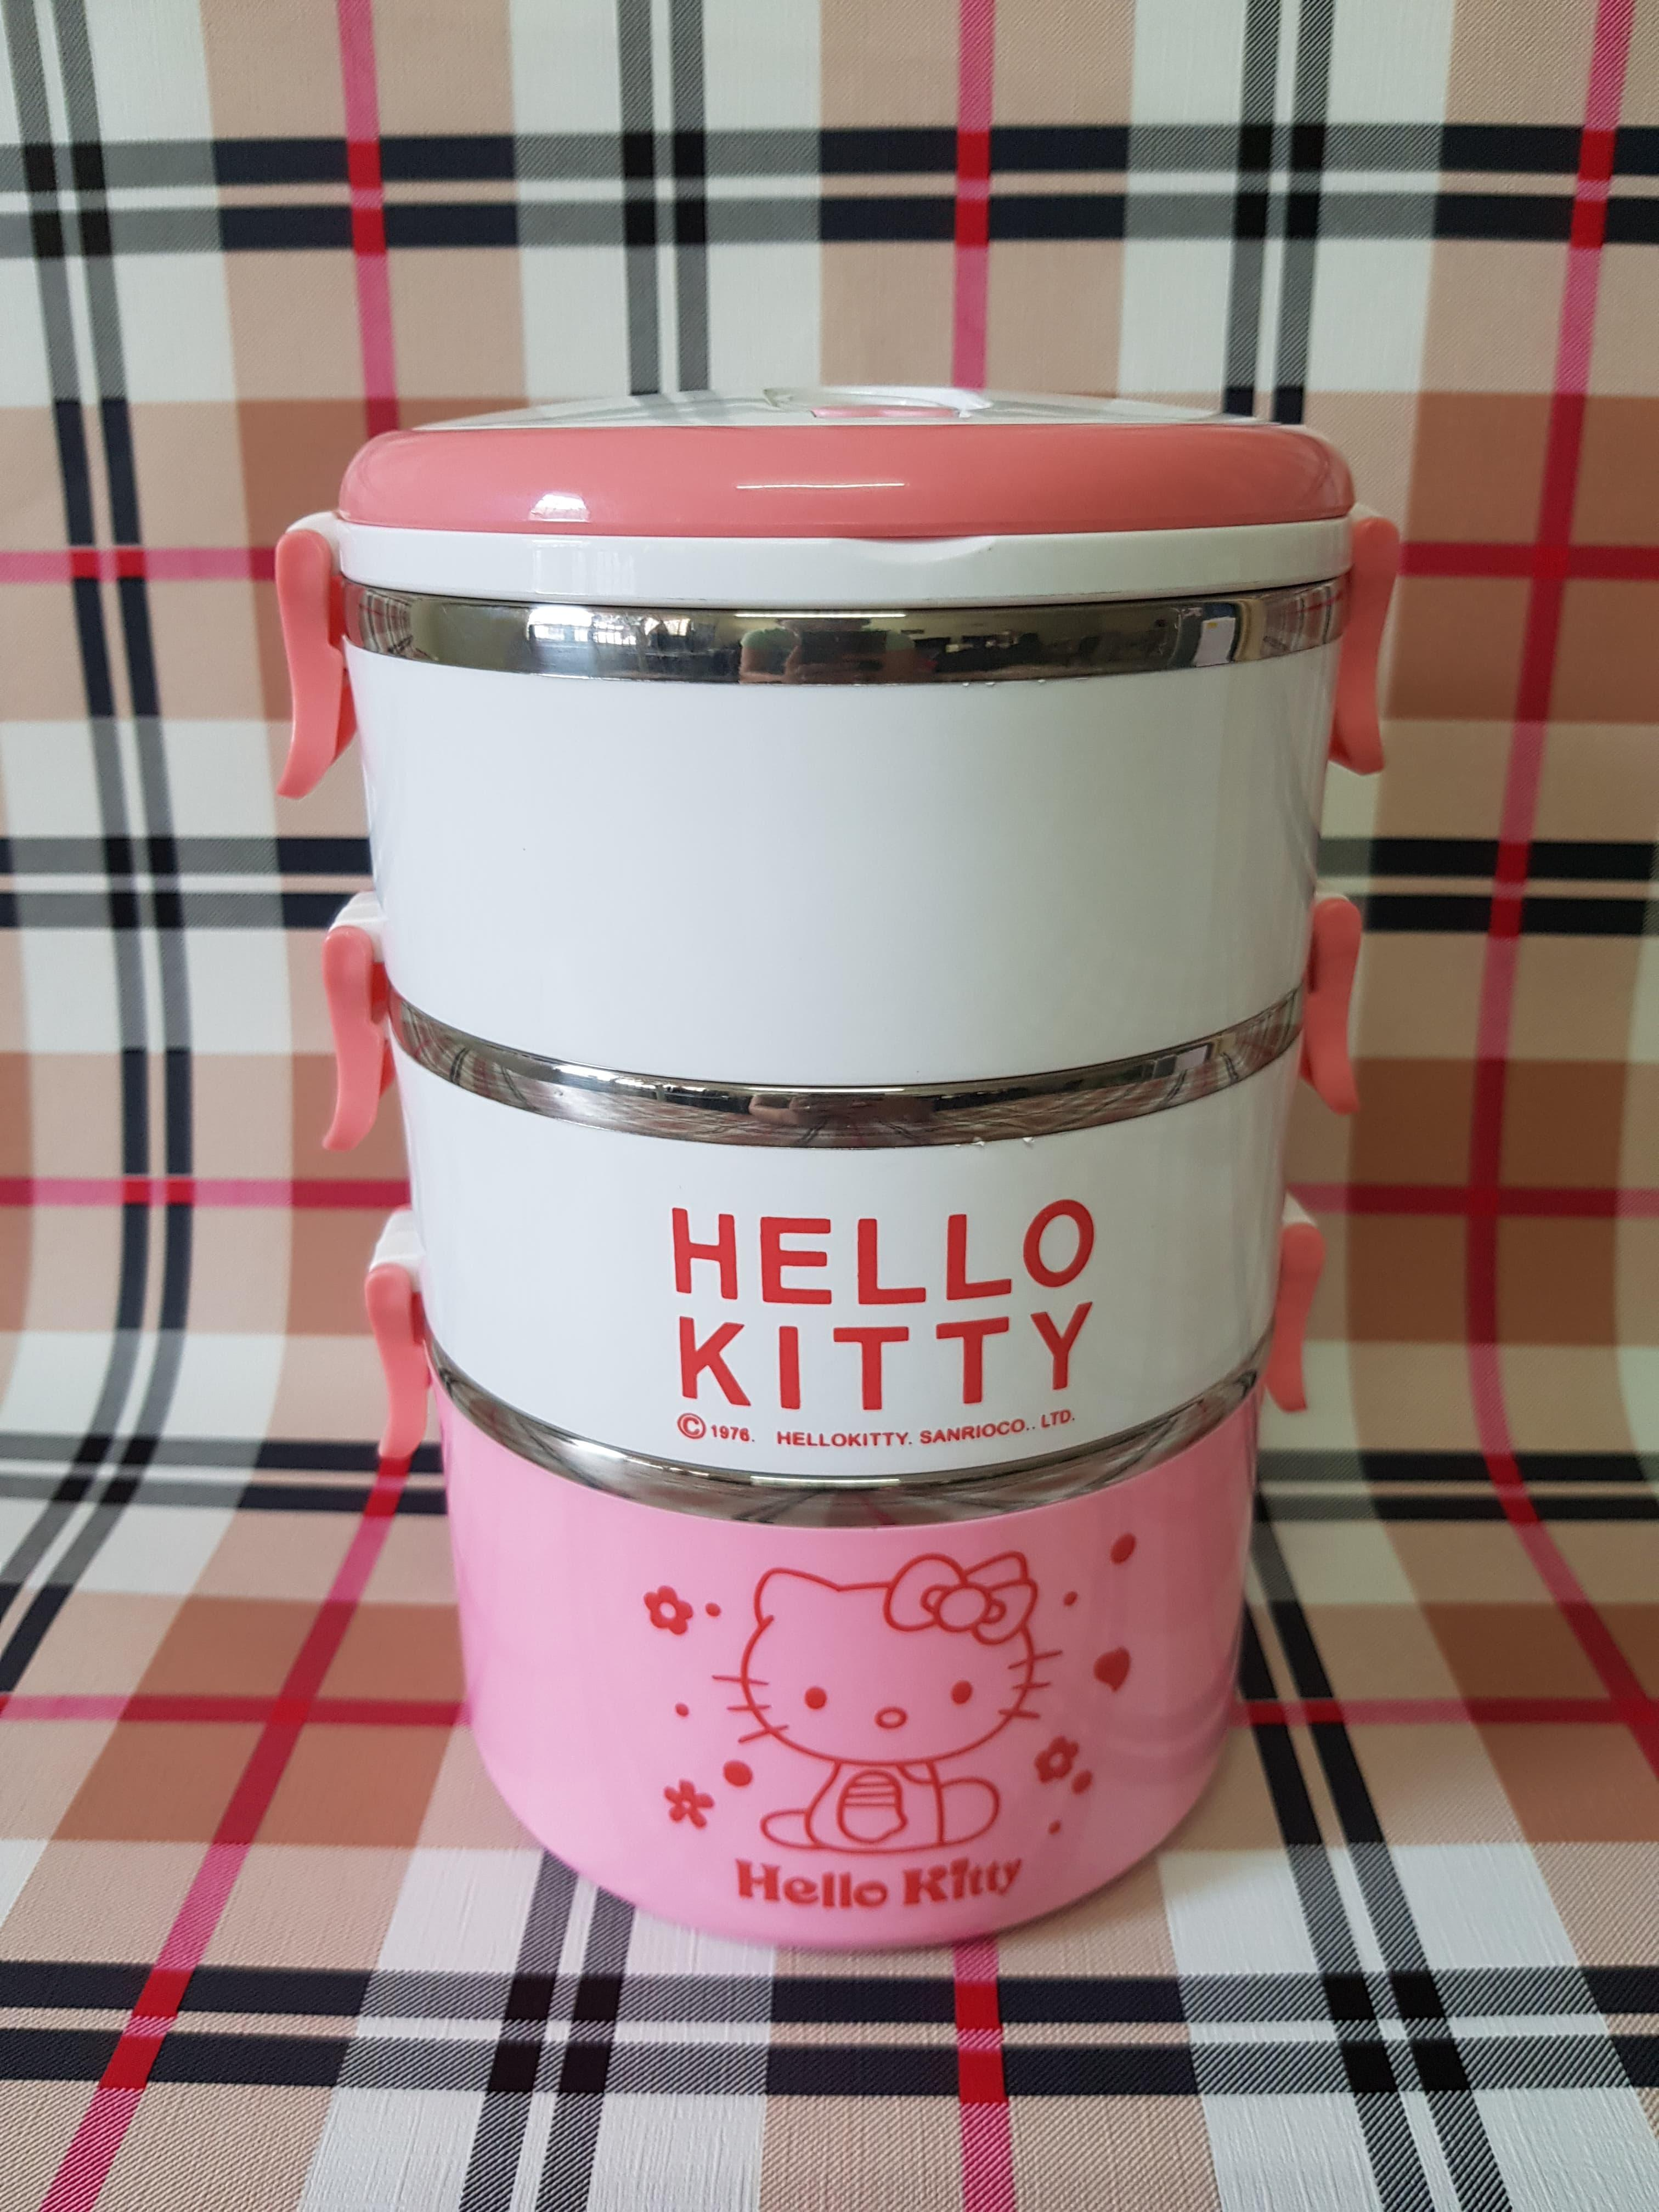 17a3fafb7 Factory Price Direct Hello Kitty Cartoon Seal Multi-layer Insulation Lunch  Box Round One Or